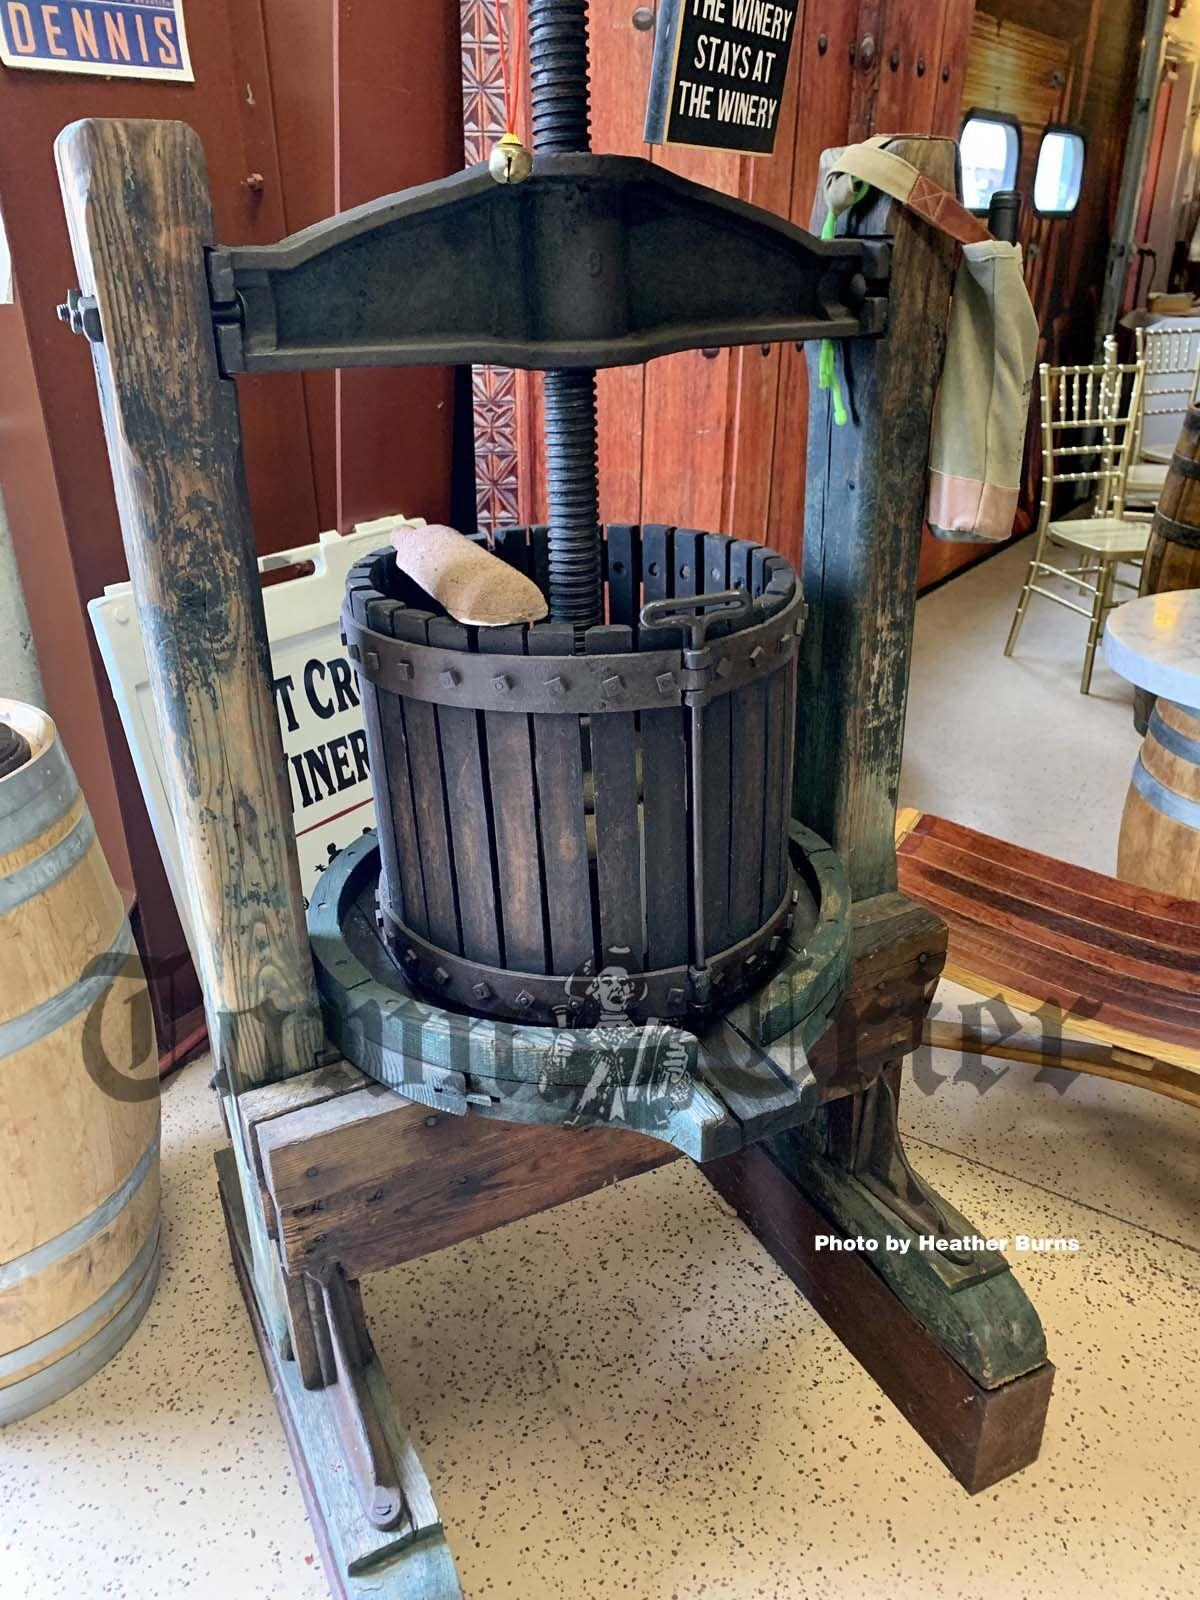 An antique wine making device at the First Crush Winery